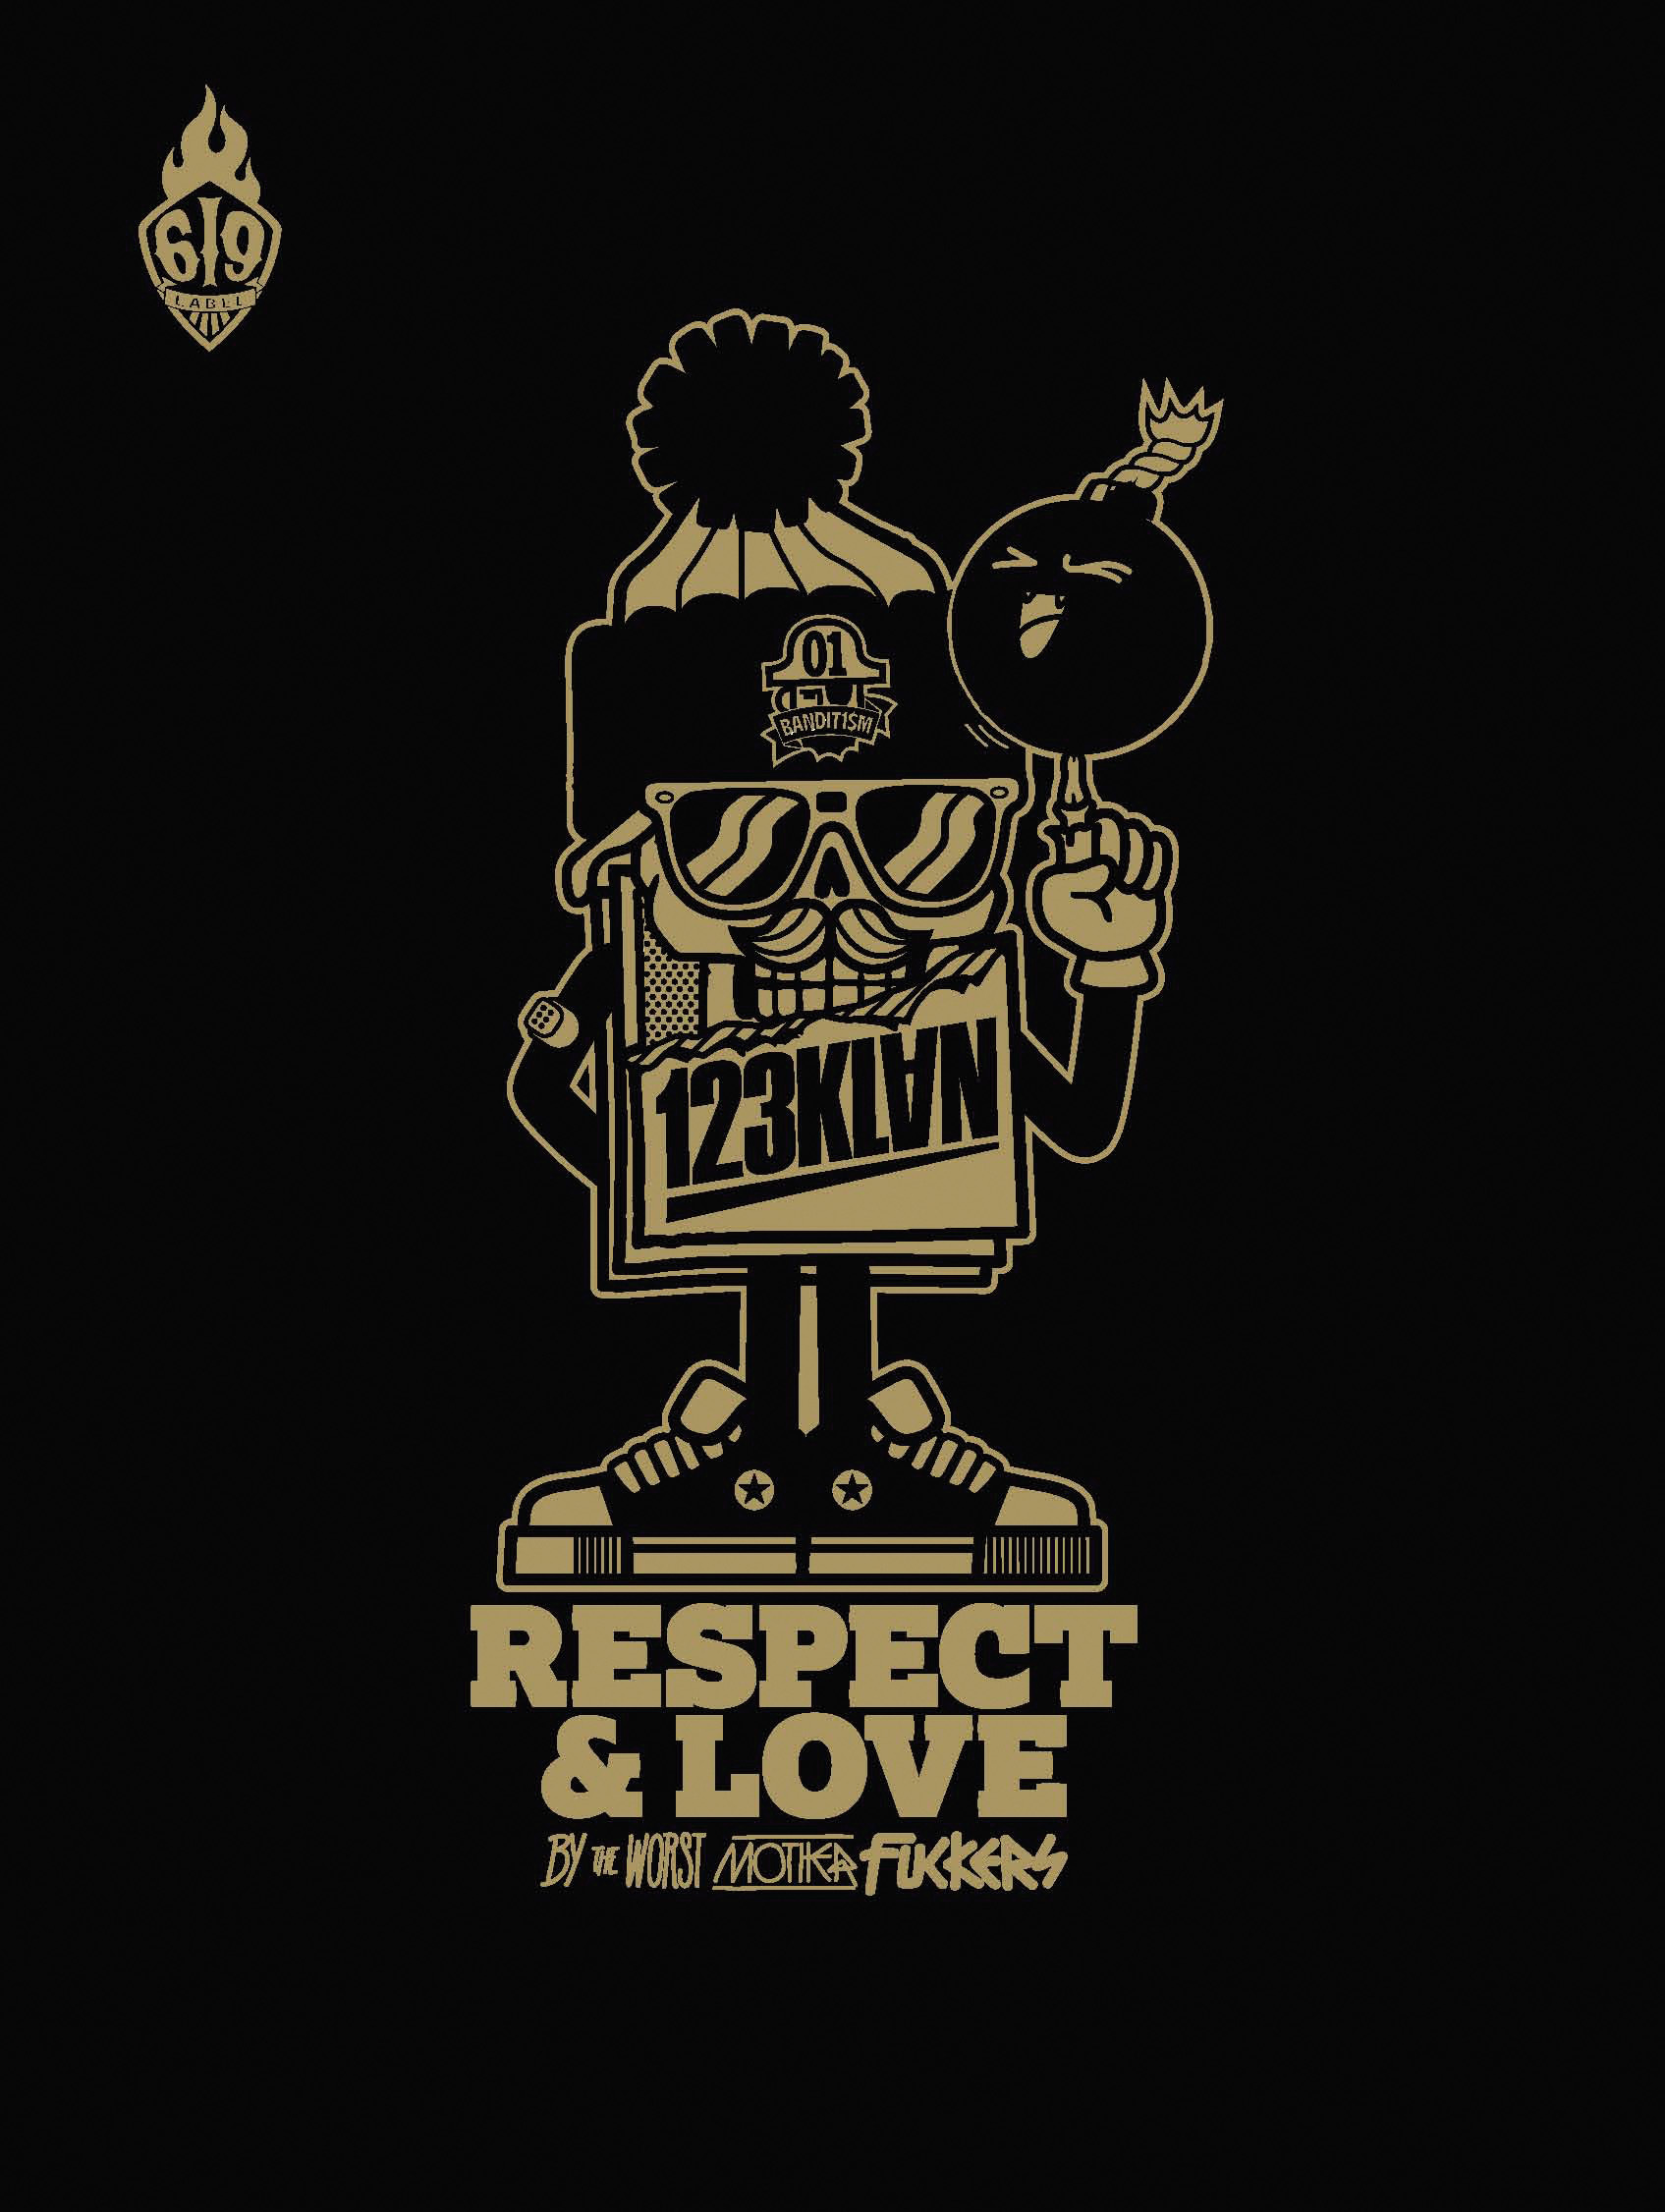 123 KLAN-RESPECT & LOVE BY THE WORST MOTHER FUCKER